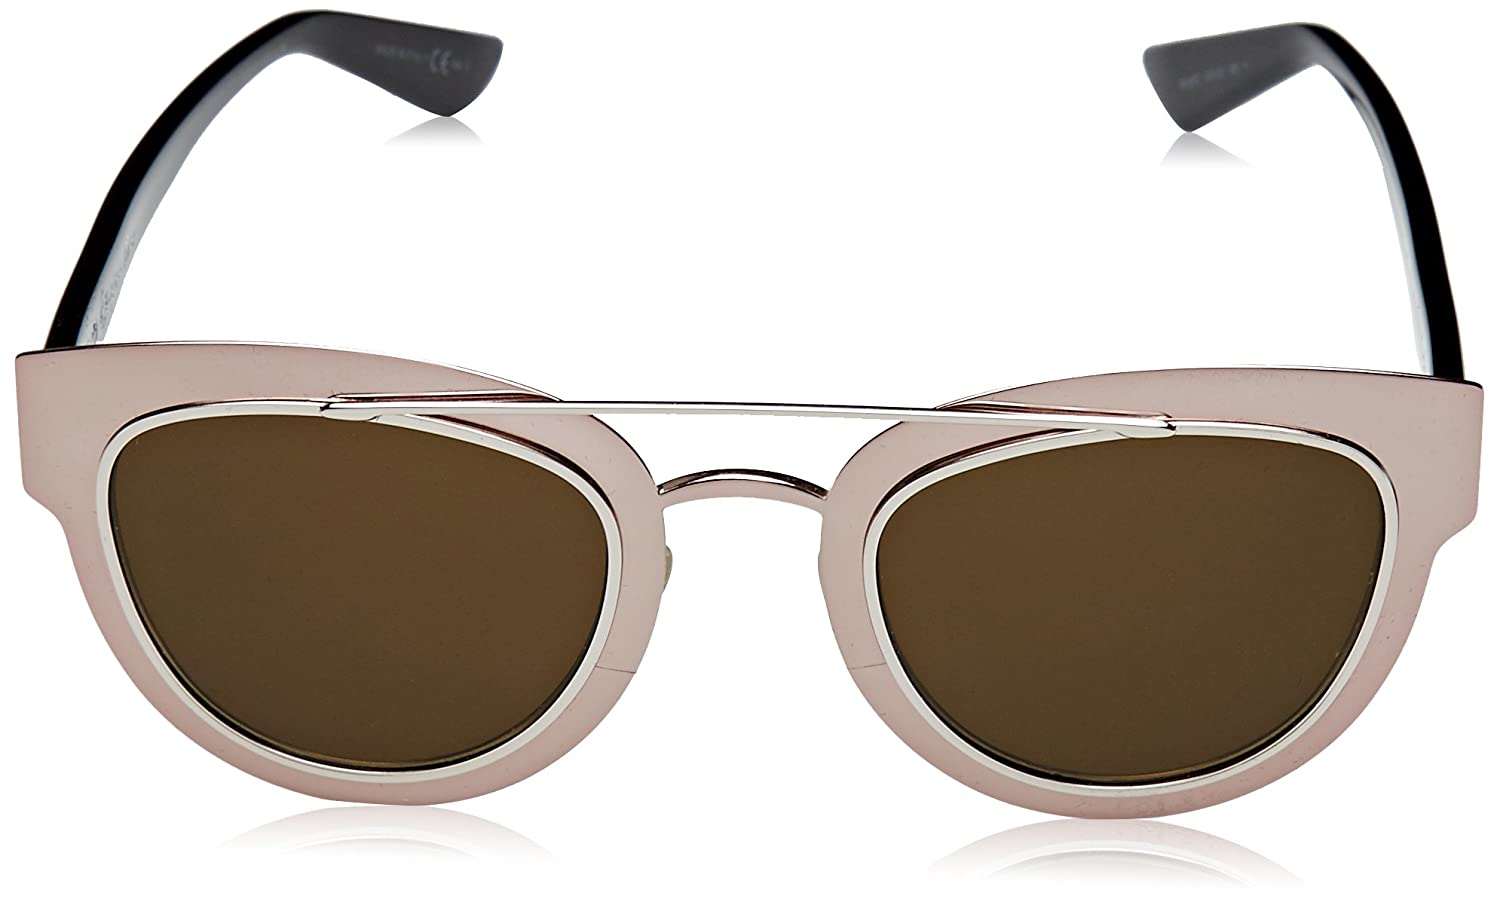 cf37eef295af0 Amazon.com  Christian Dior Chromic S Sunglasses Pink Black Brown  Clothing